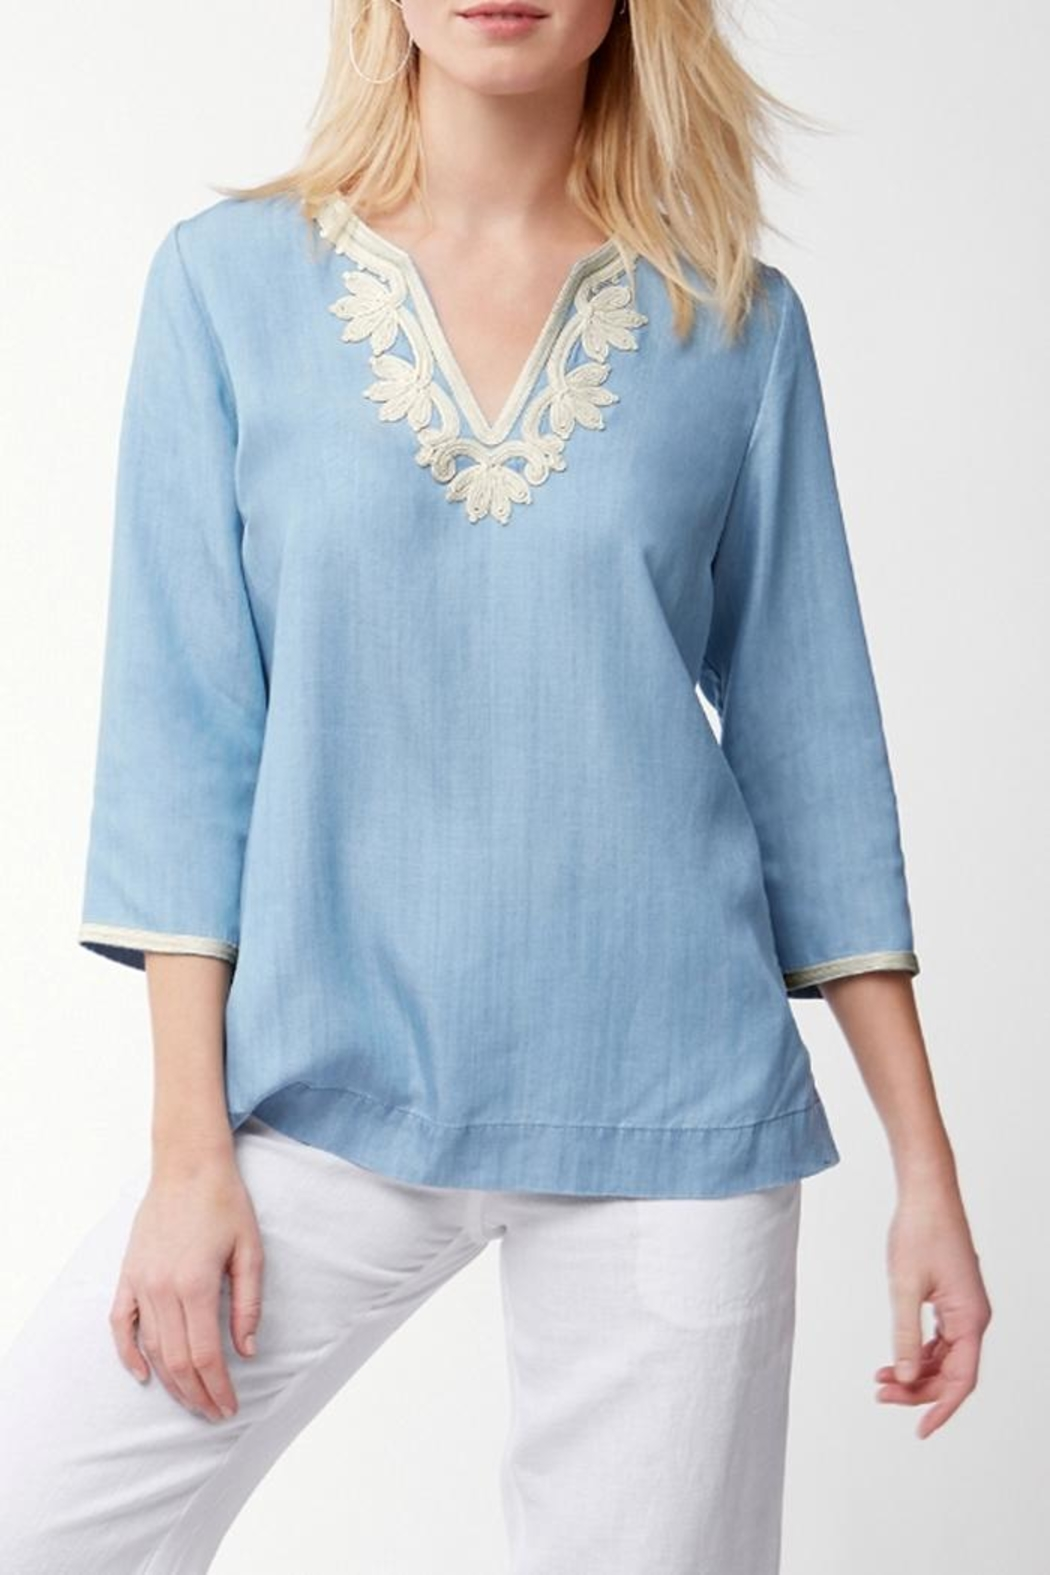 fa51a4ef244 Tommy Bahama Chambray Embroidered Tunic from New Jersey by Le ...